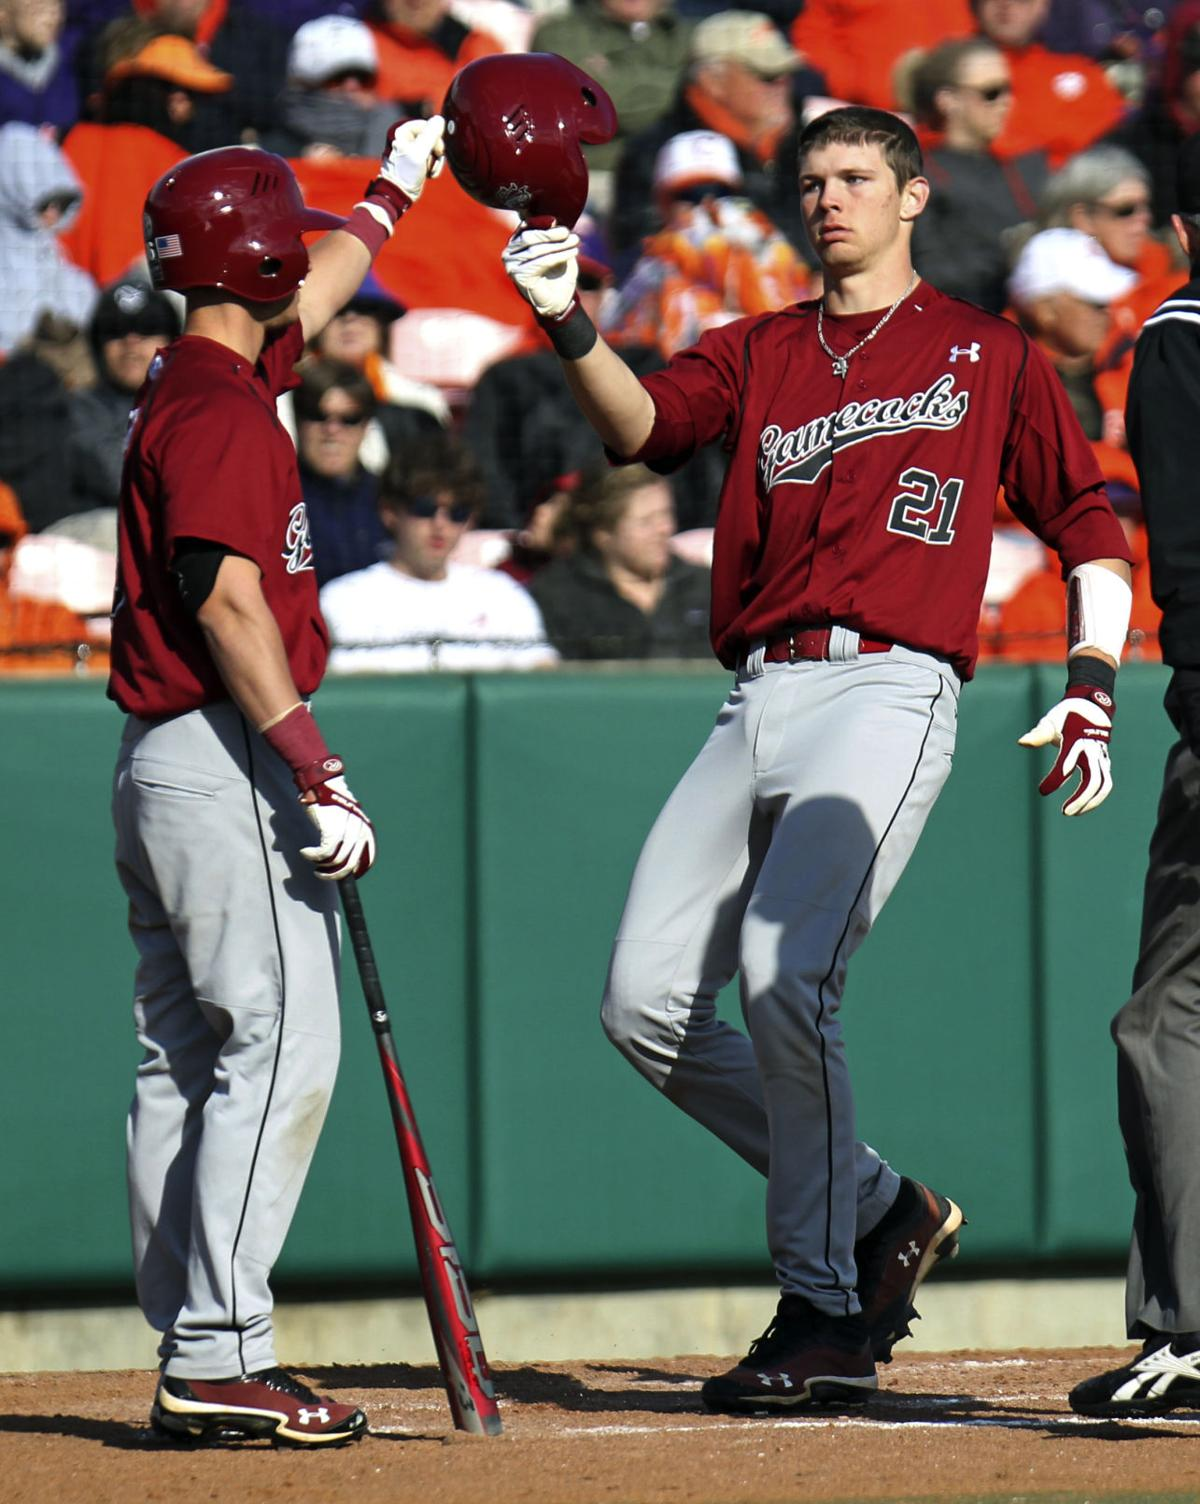 Grayson Greiner deserves to be considered among nation's best catchers